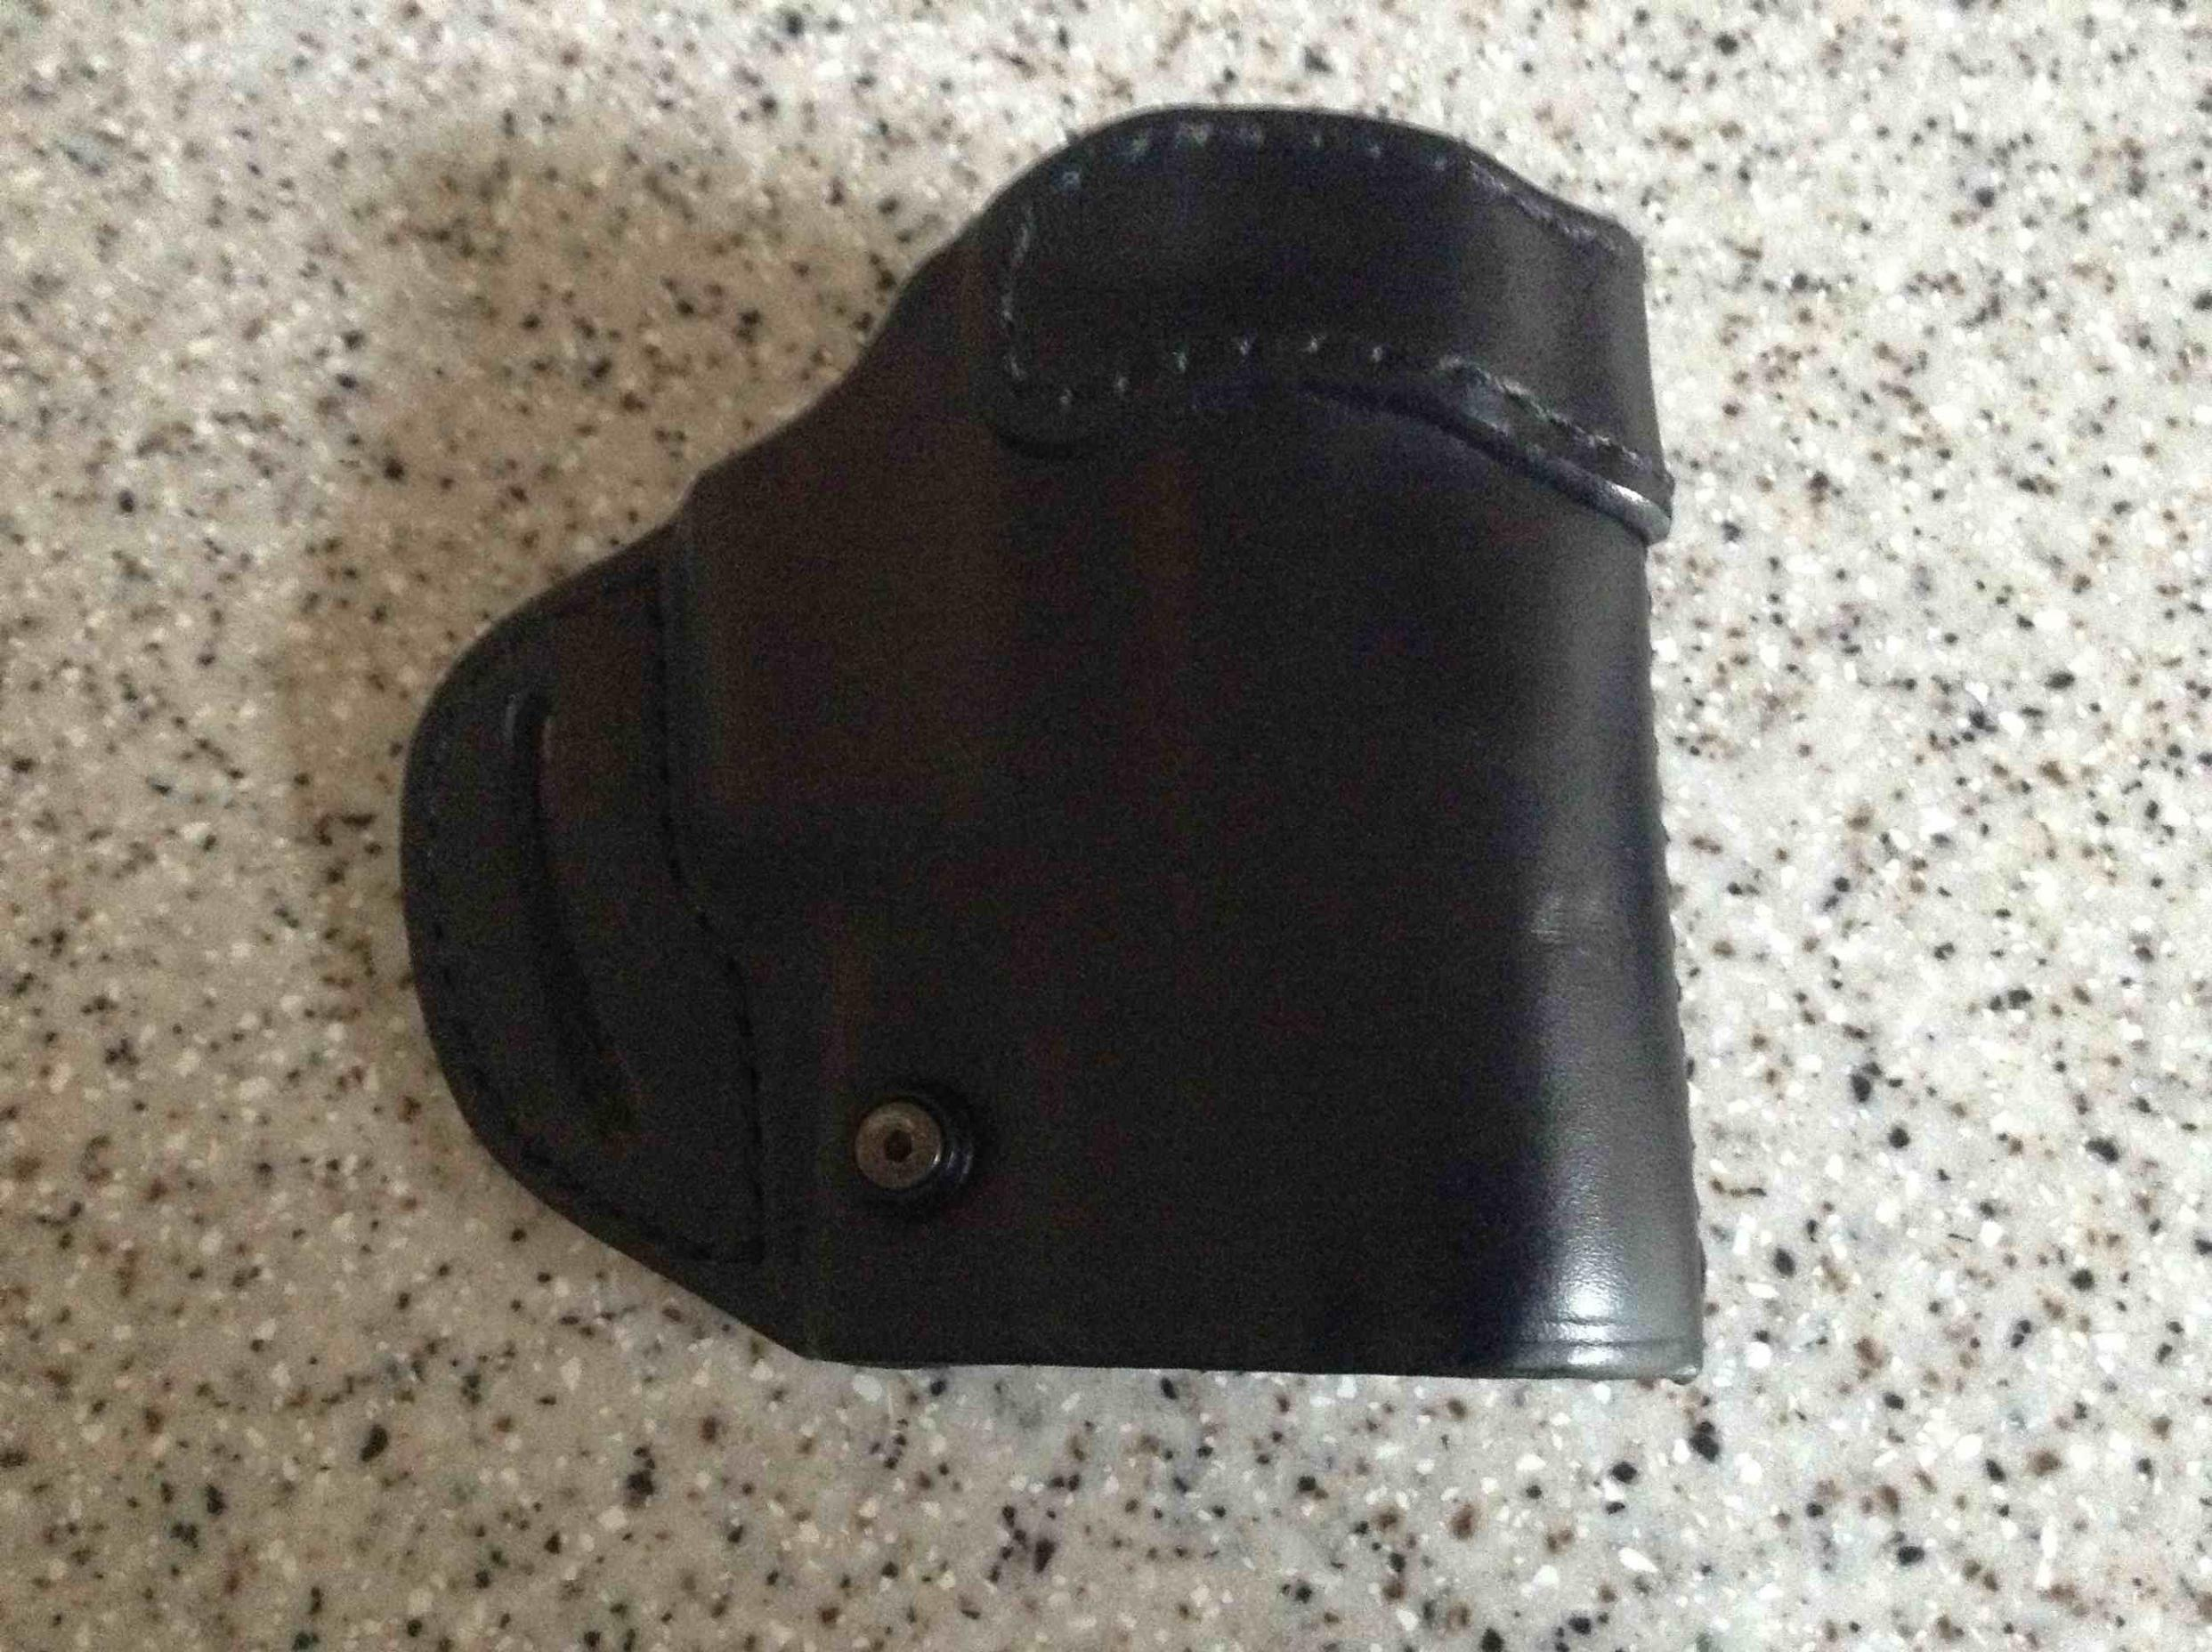 Blackhawk and Bianchi Sig P220/226 leather holsters for sale-imageuploadedbytapatalk-hd1364661240.396400.jpg